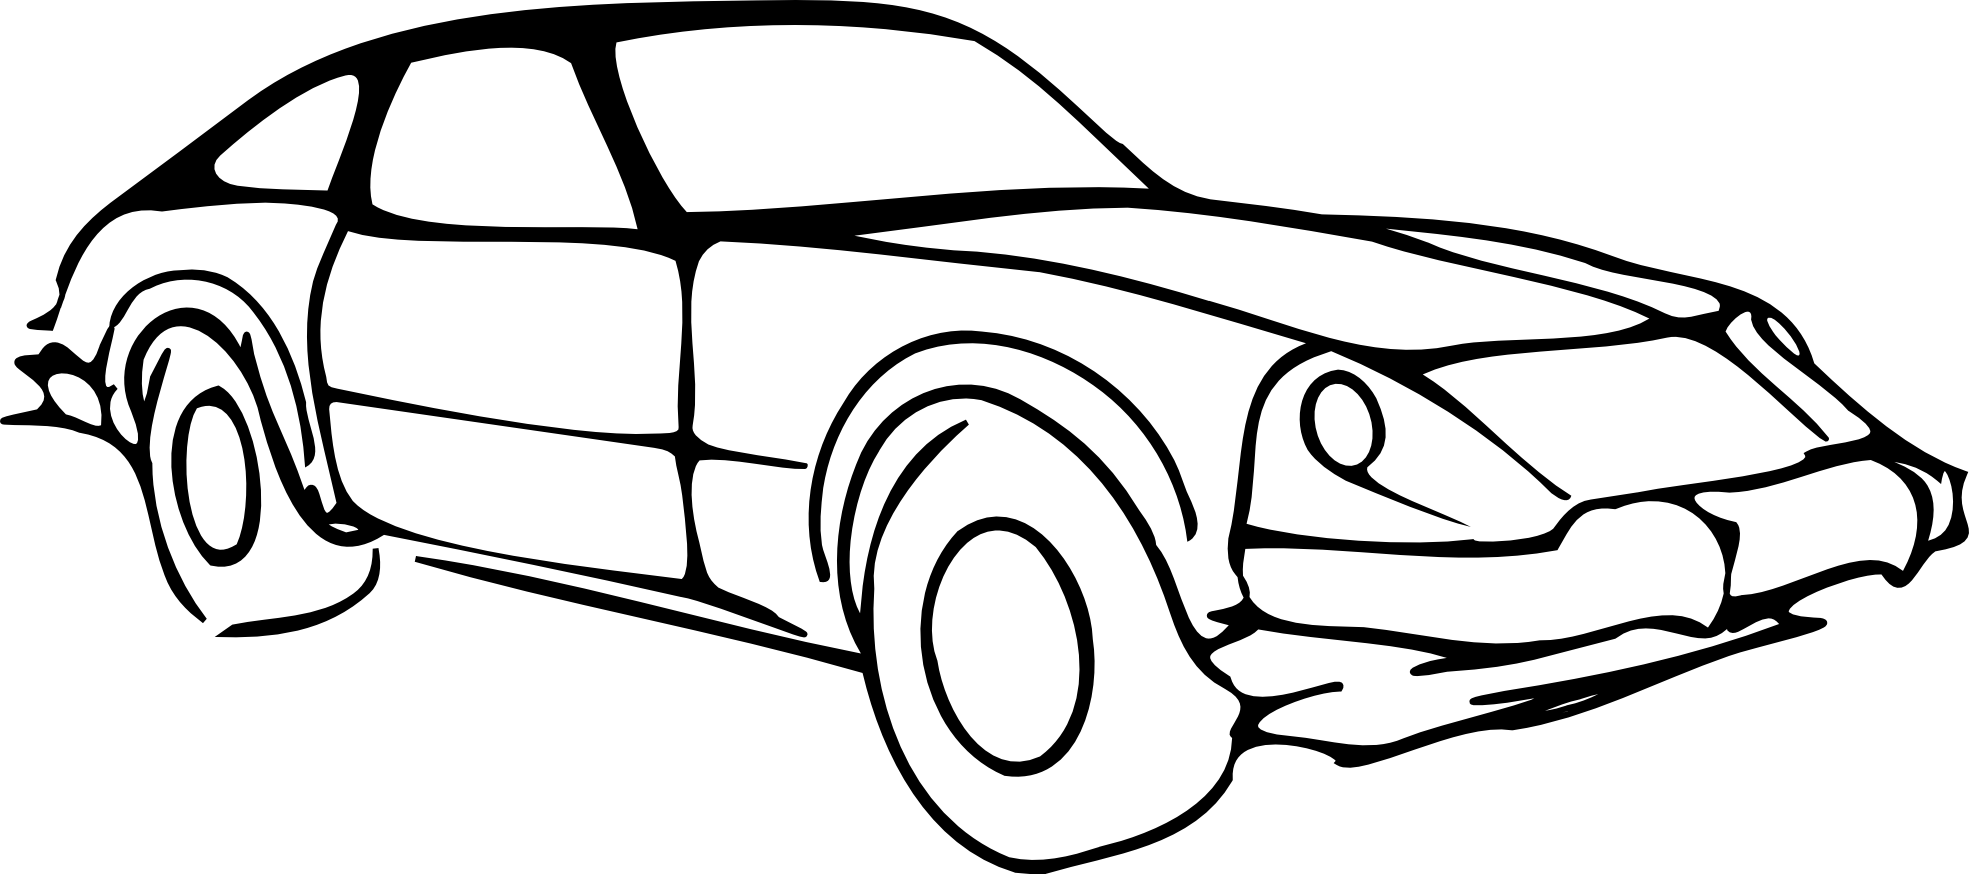 Smashed car clipart png transparent 28+ Collection of White Car Drawing | High quality, free cliparts ... png transparent